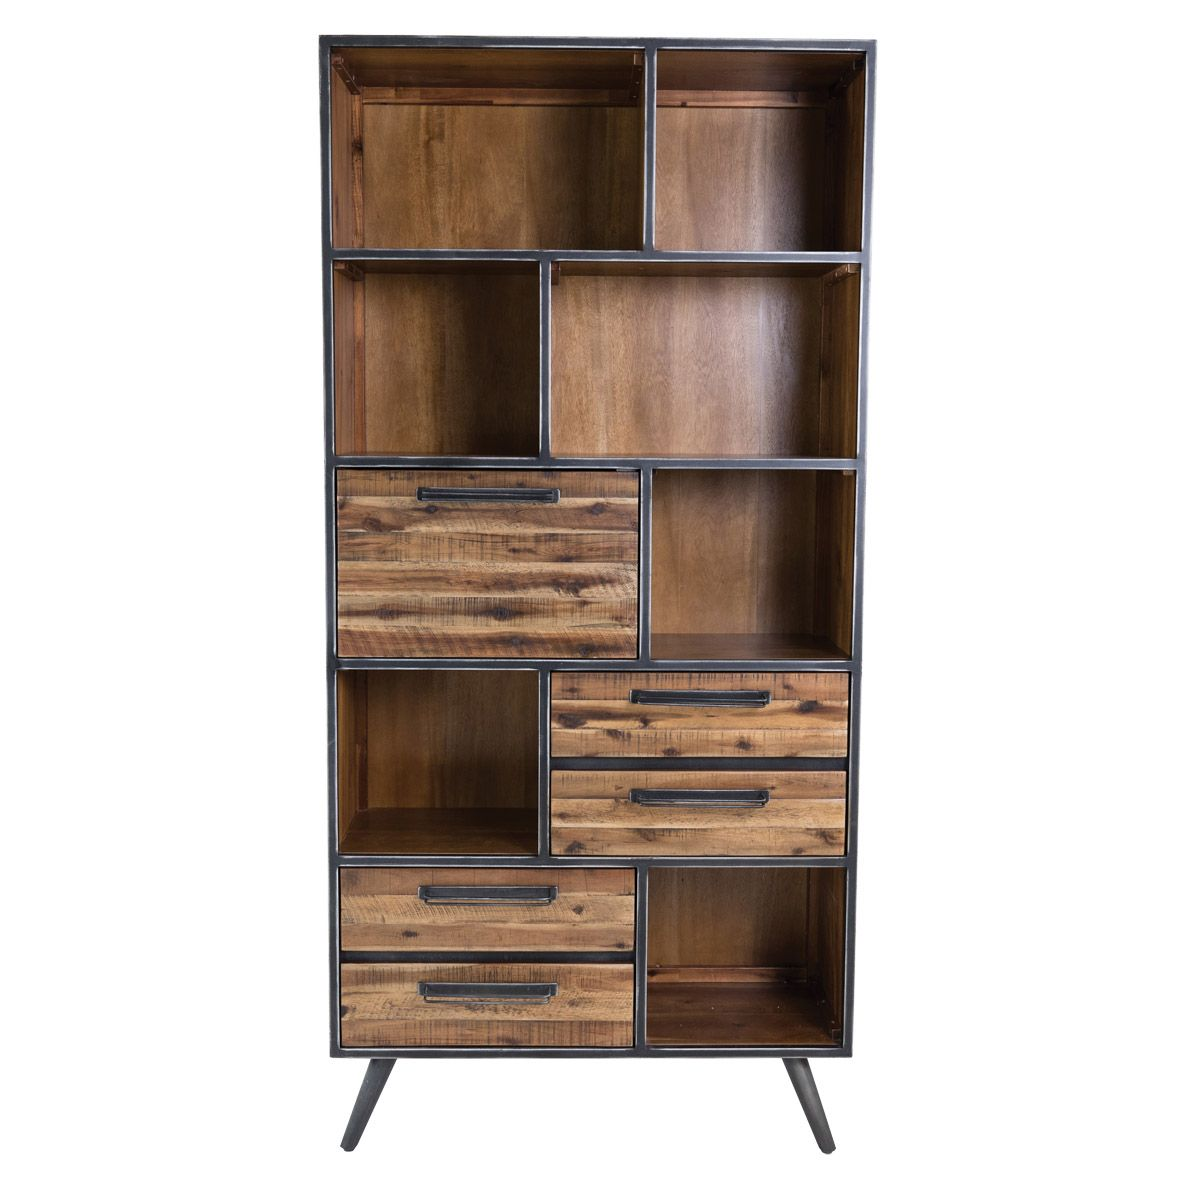 biblioth que style industriel en bois et m tal 7 niches cusco zago store. Black Bedroom Furniture Sets. Home Design Ideas